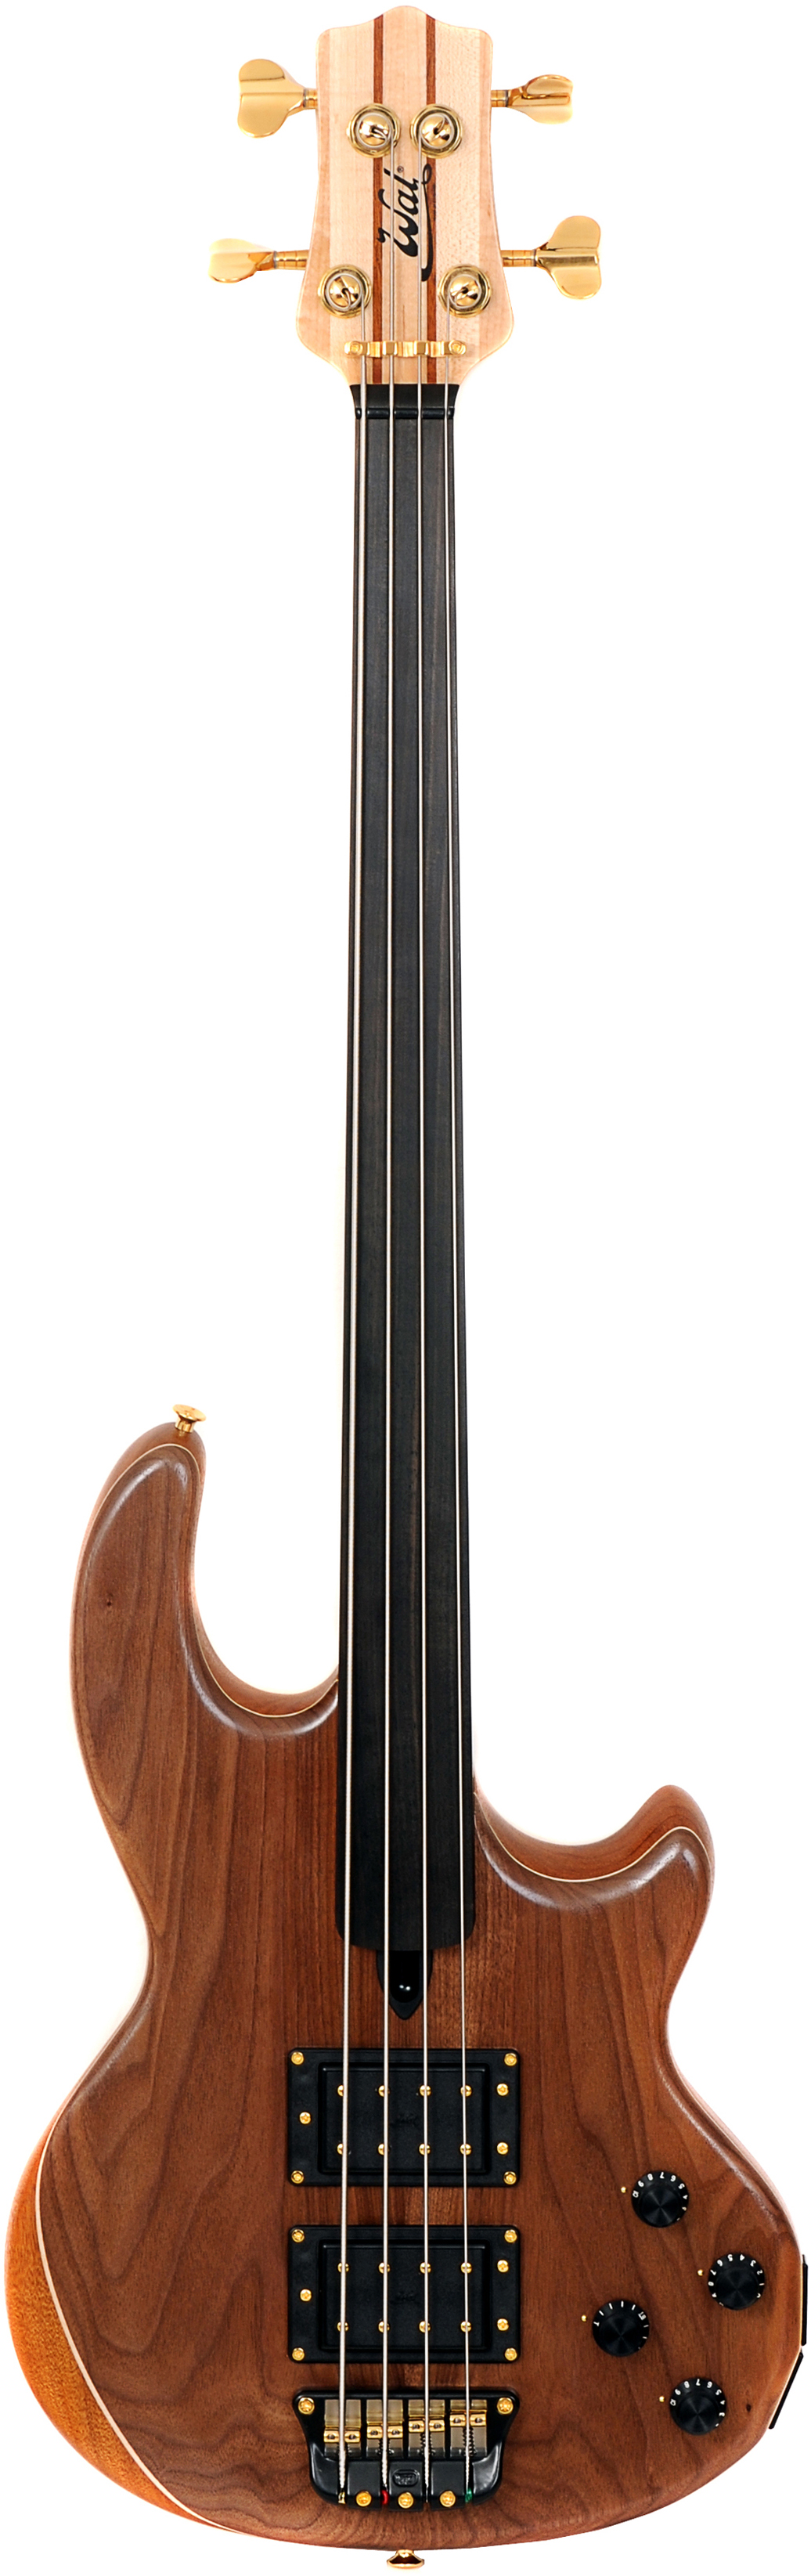 4-string Mk2 with American walnut facings, plain fretless ebony fingerboard and gold hardware.